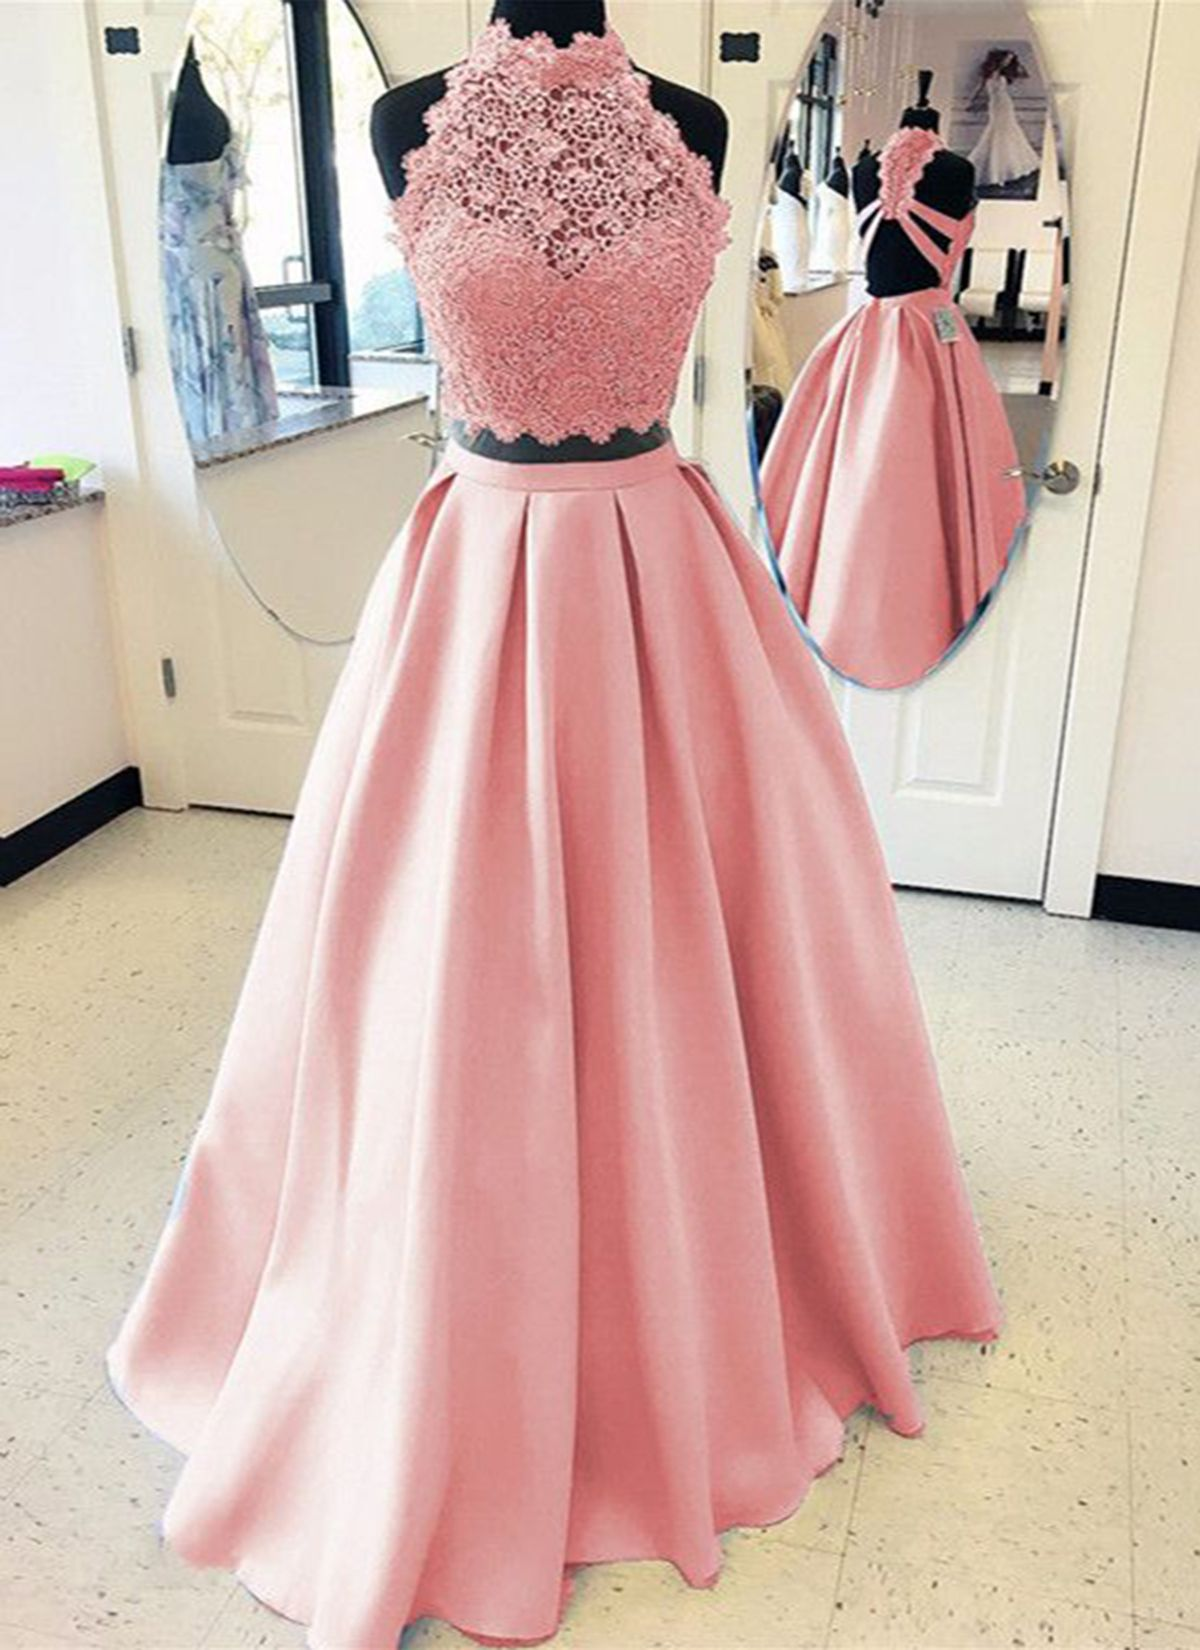 db9a036a962 Two Piece Prom Dress, Pink Prom Dress, Beautiful Lace Top Satin Prom Dress  For